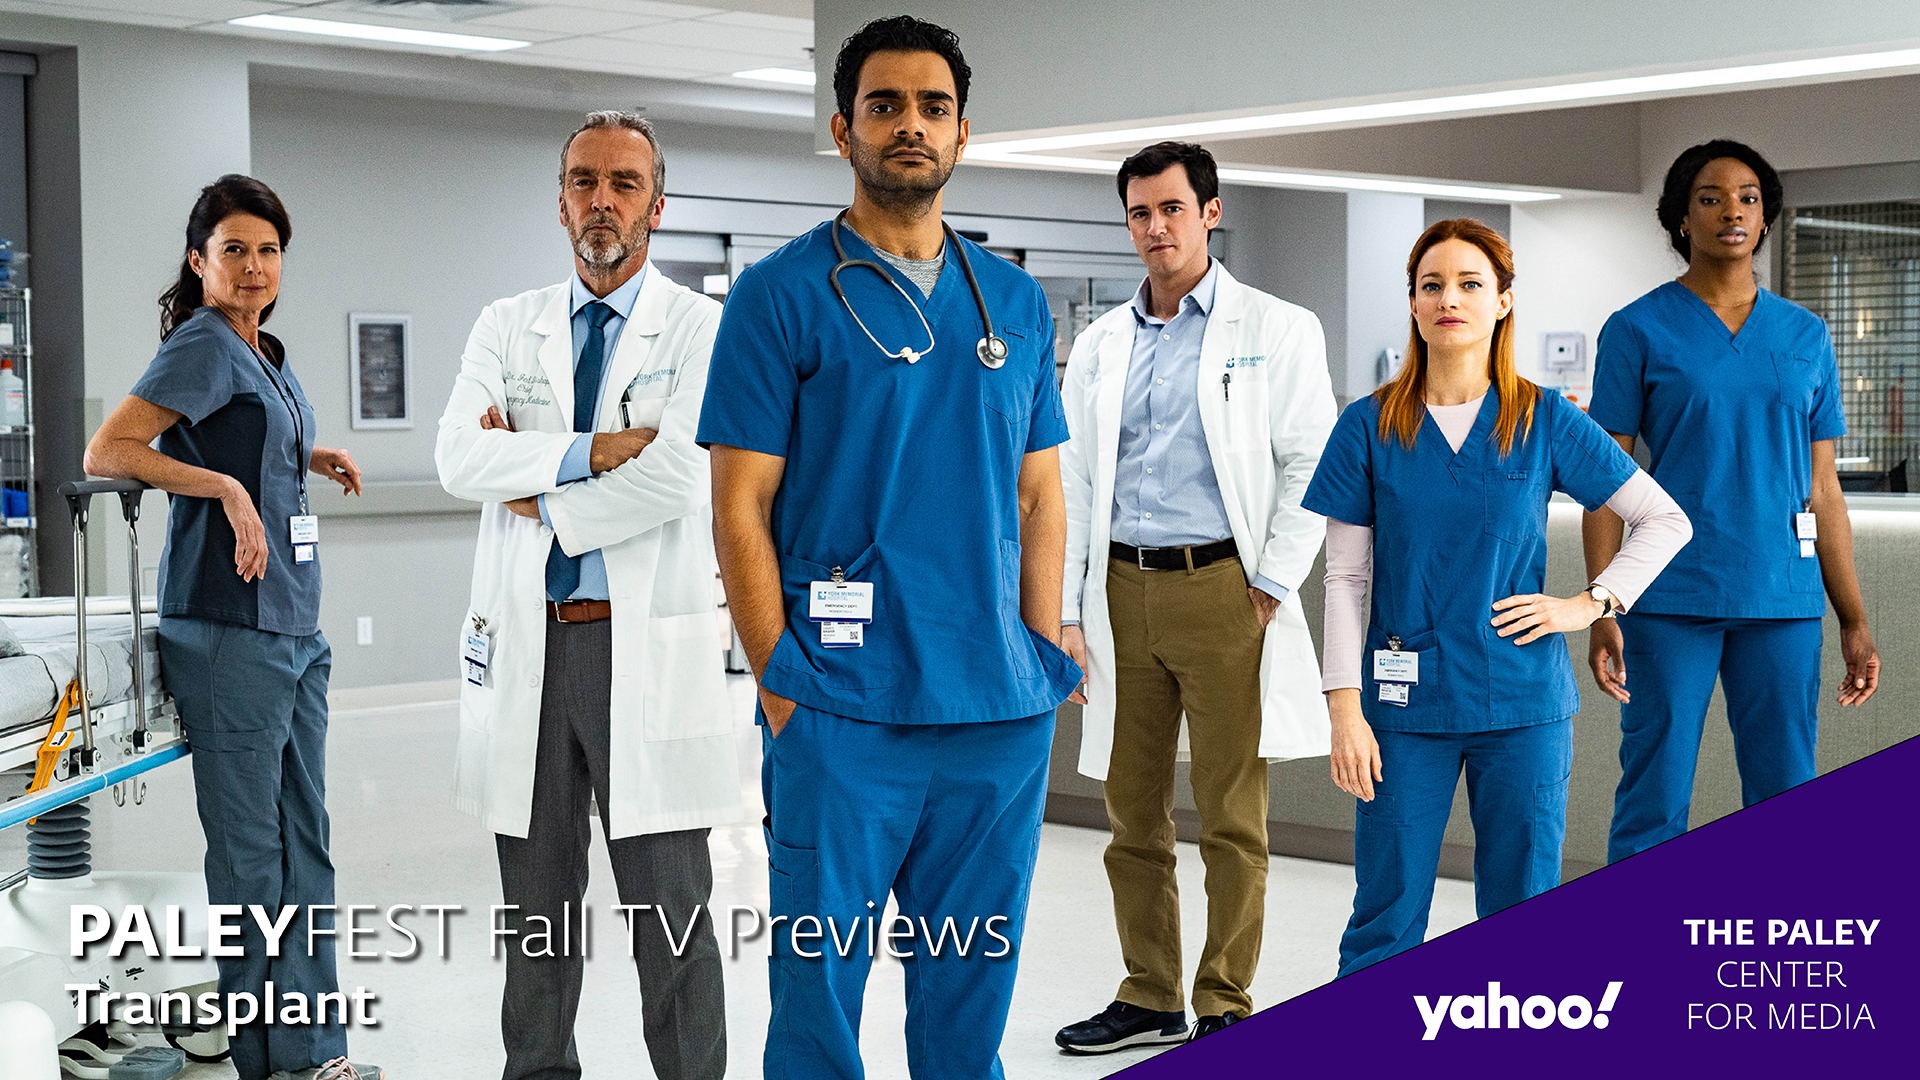 Transplant at PaleyFest Fall TV Previews 2020